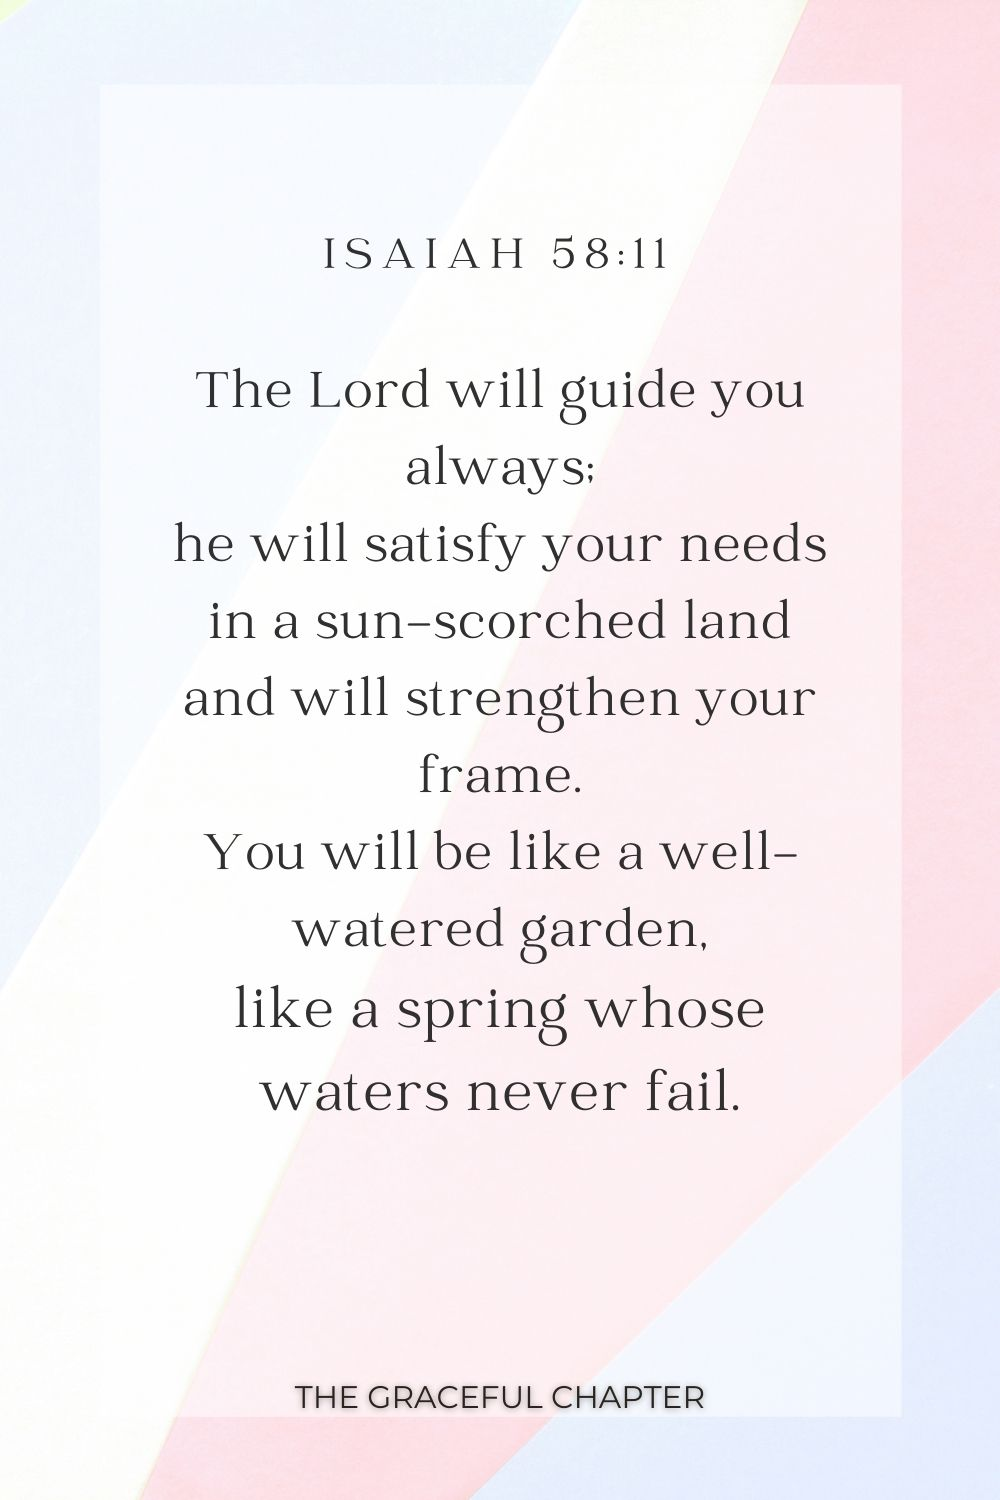 The Lord will guide you always; he will satisfy your needs in a sun-scorched land and will strengthen your frame. You will be like a well-watered garden, like a spring whose waters never fail. Isaiah 58:11